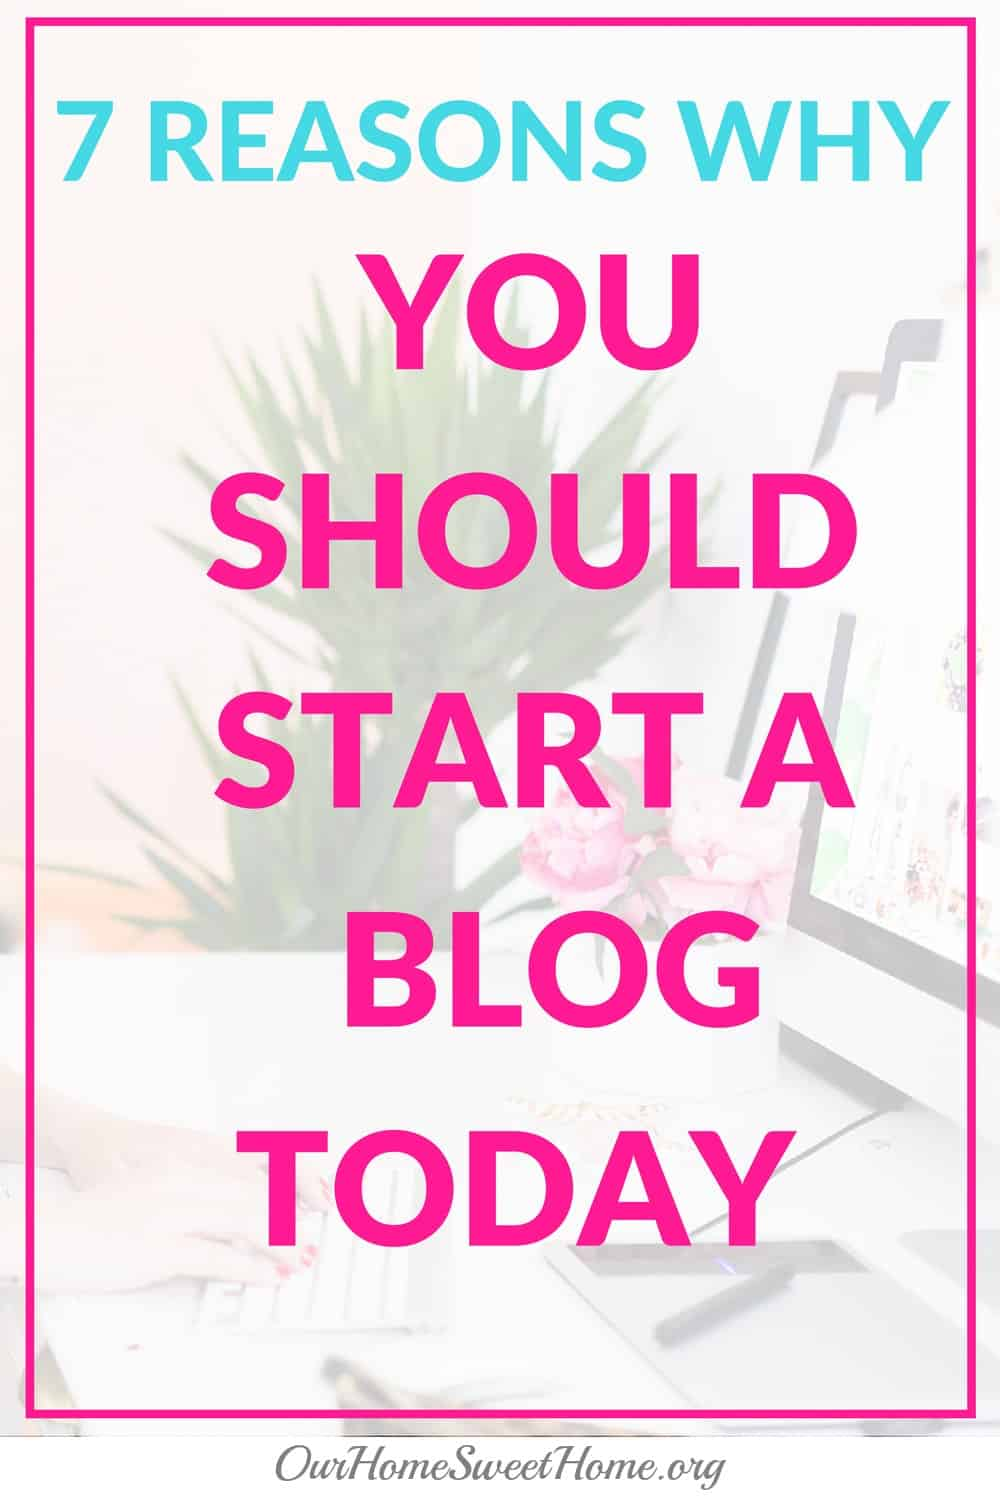 7 Reasons Why You Should Start a Blog Today